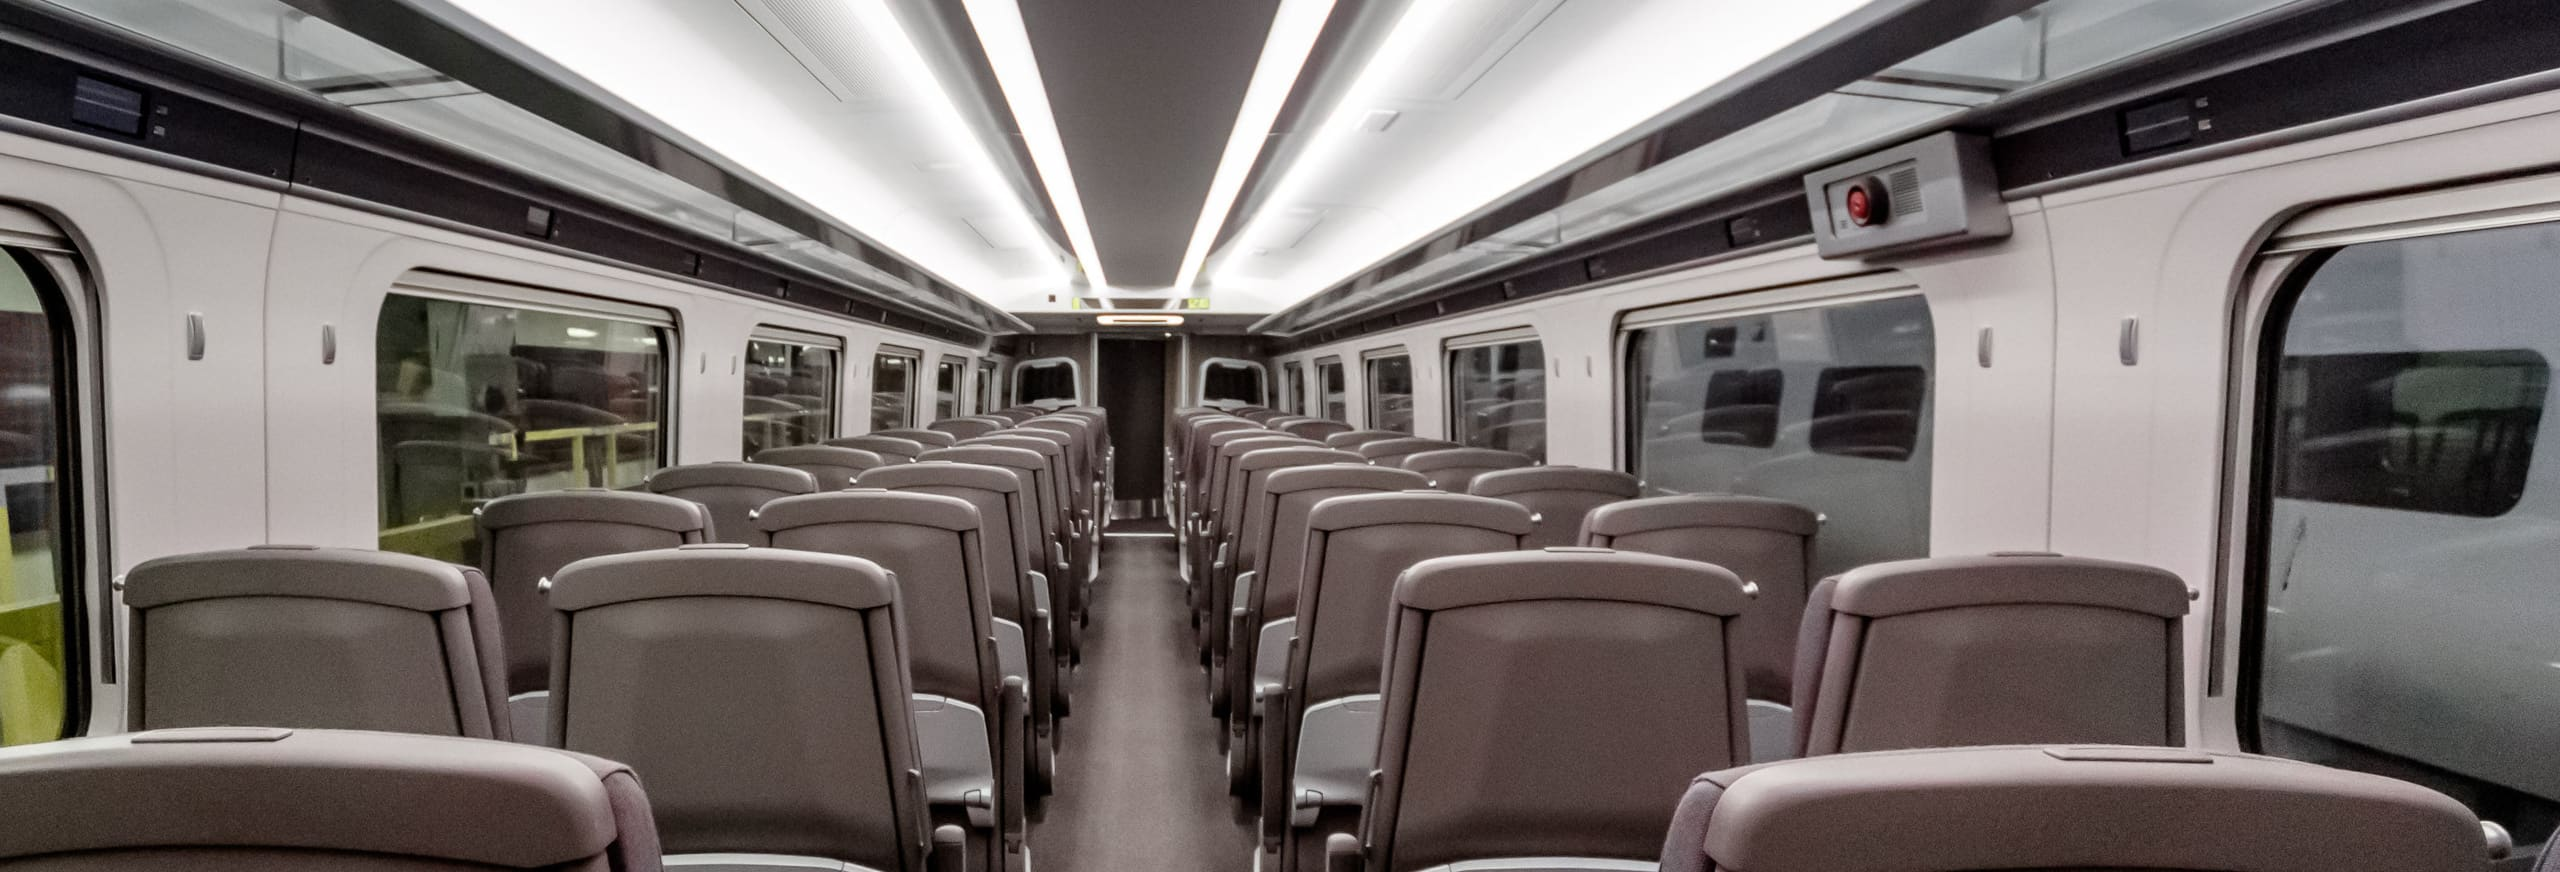 Example of new Hitachi train interior